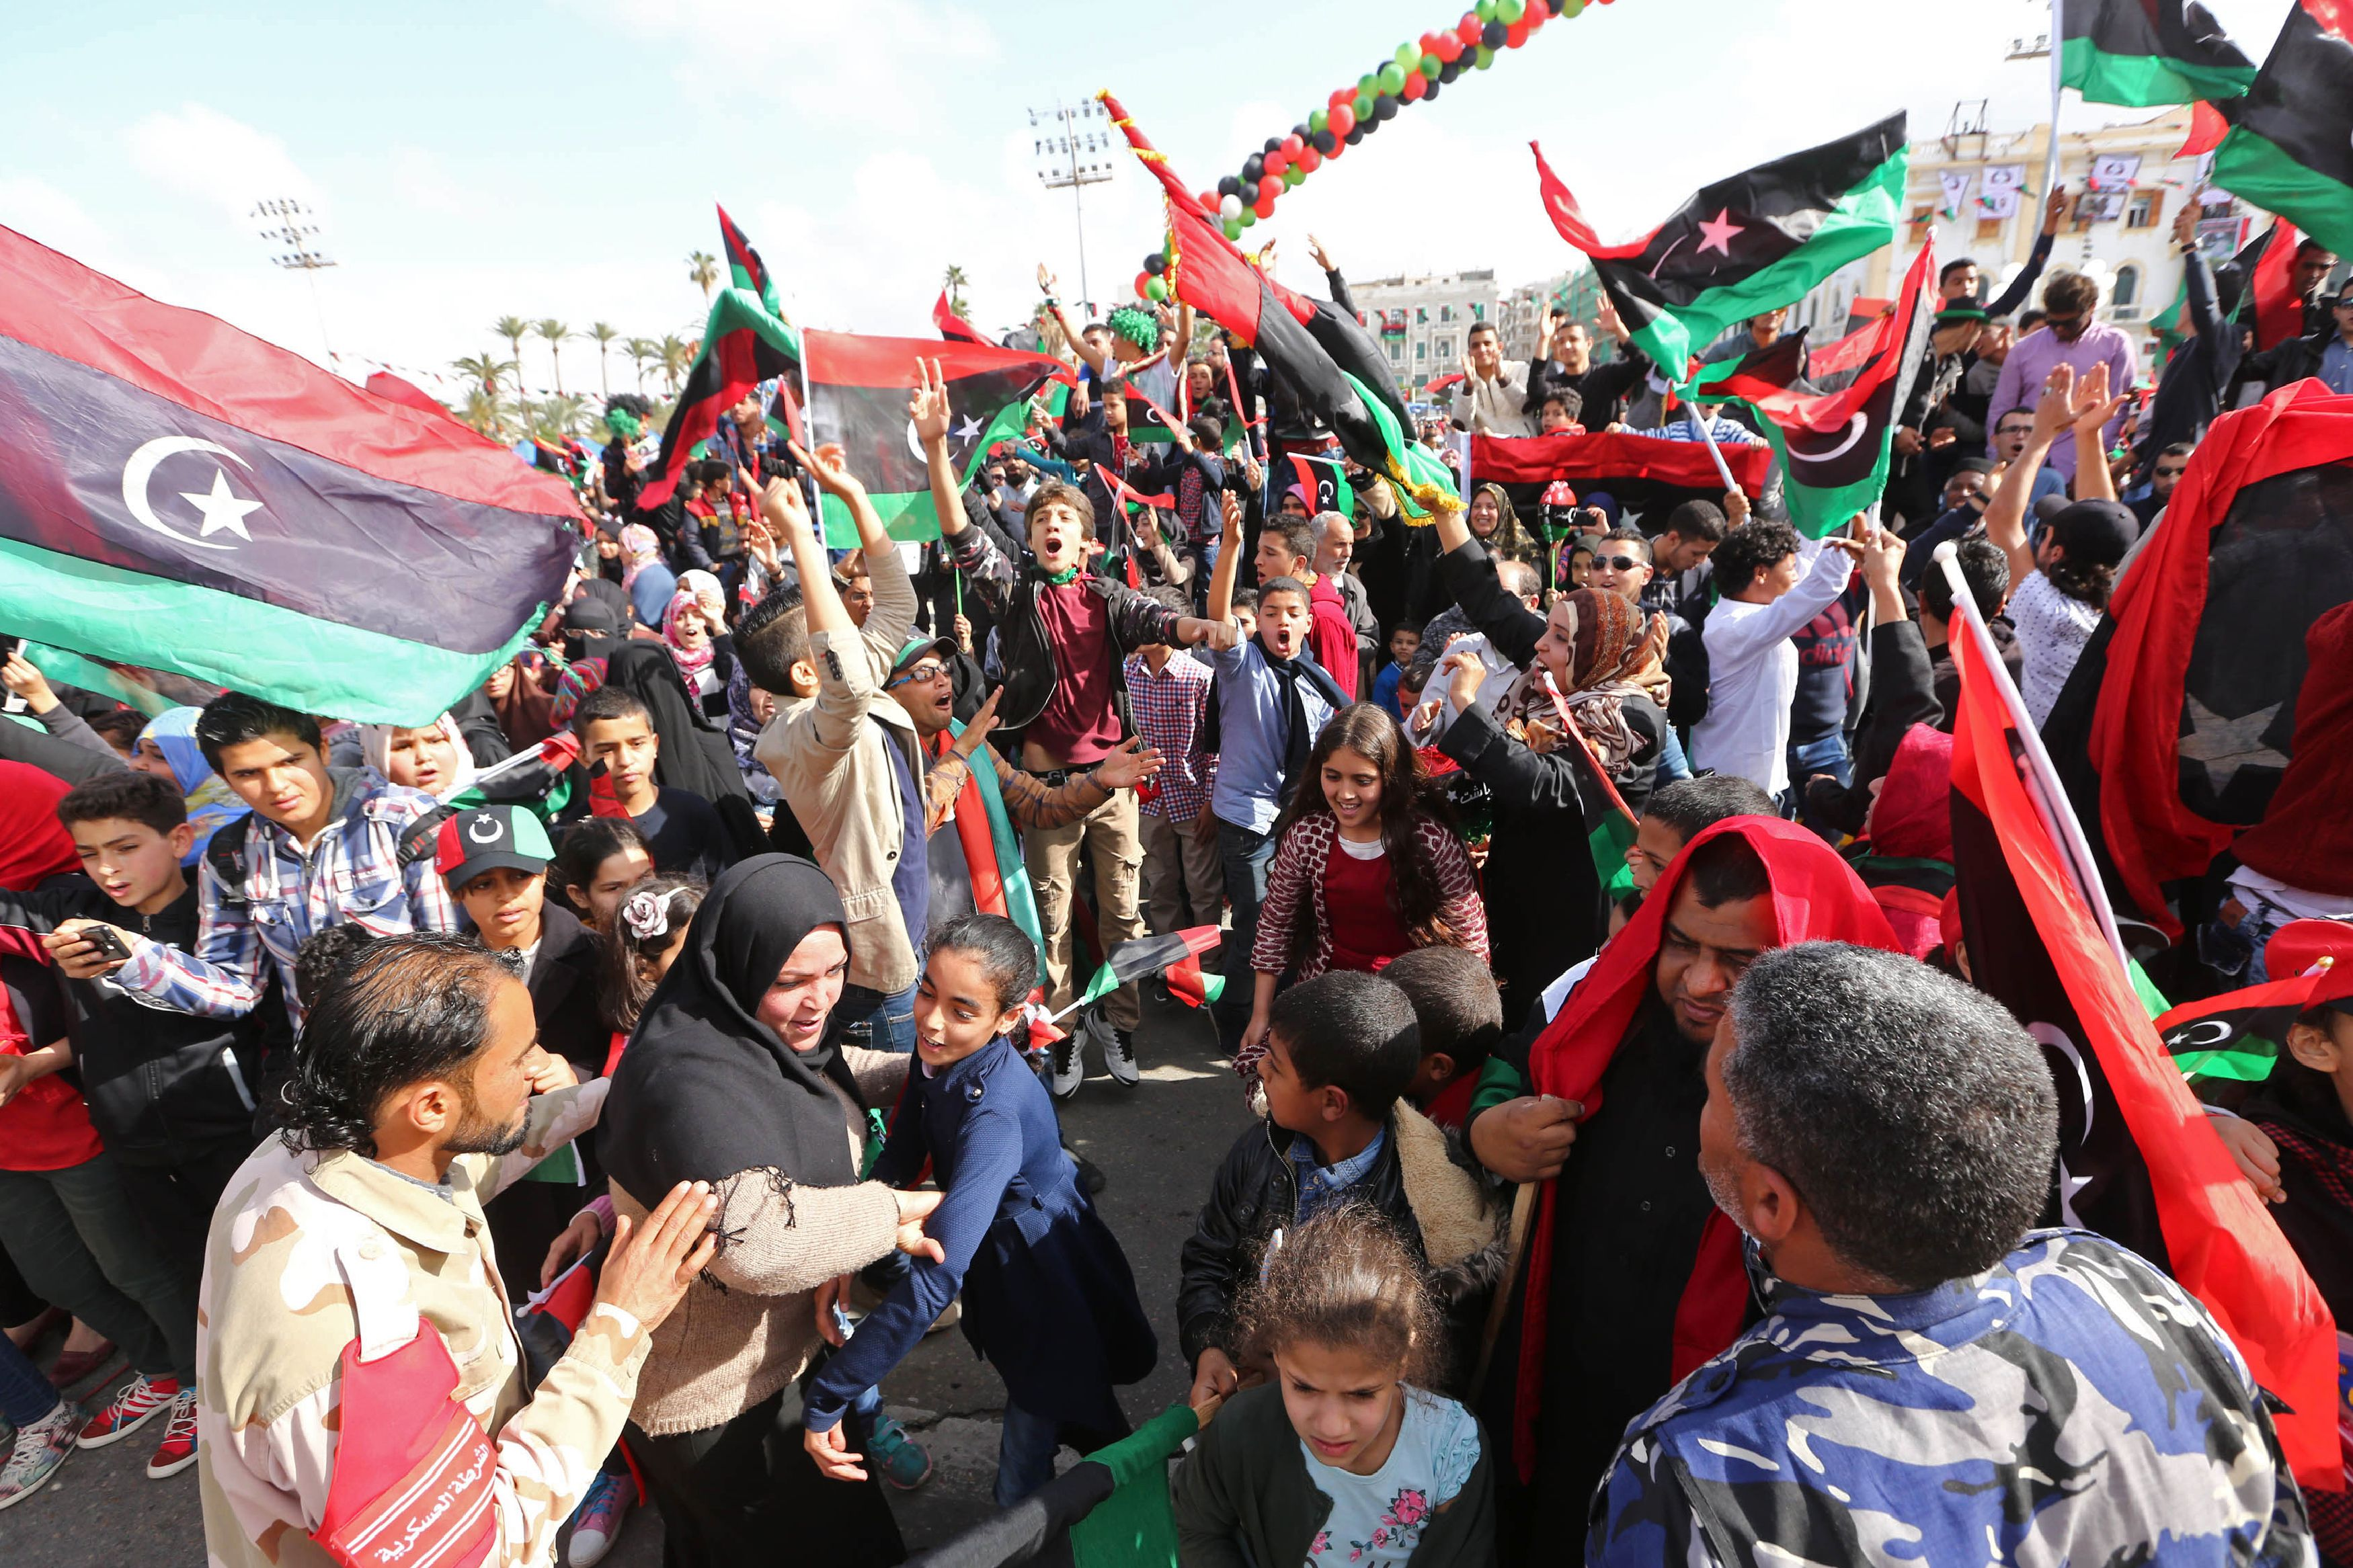 Libyans take part in celebrations markin...Libyans take part in celebrations marking the fifth anniversary of the Libyan revolution, which toppled strongman Moamer Kadhafi, at Martyrs' Square in the capital Tripoli, on February 17, 2016. / AFP / MAHMUD TURKIAMAHMUD TURKIA/AFP/Getty Images